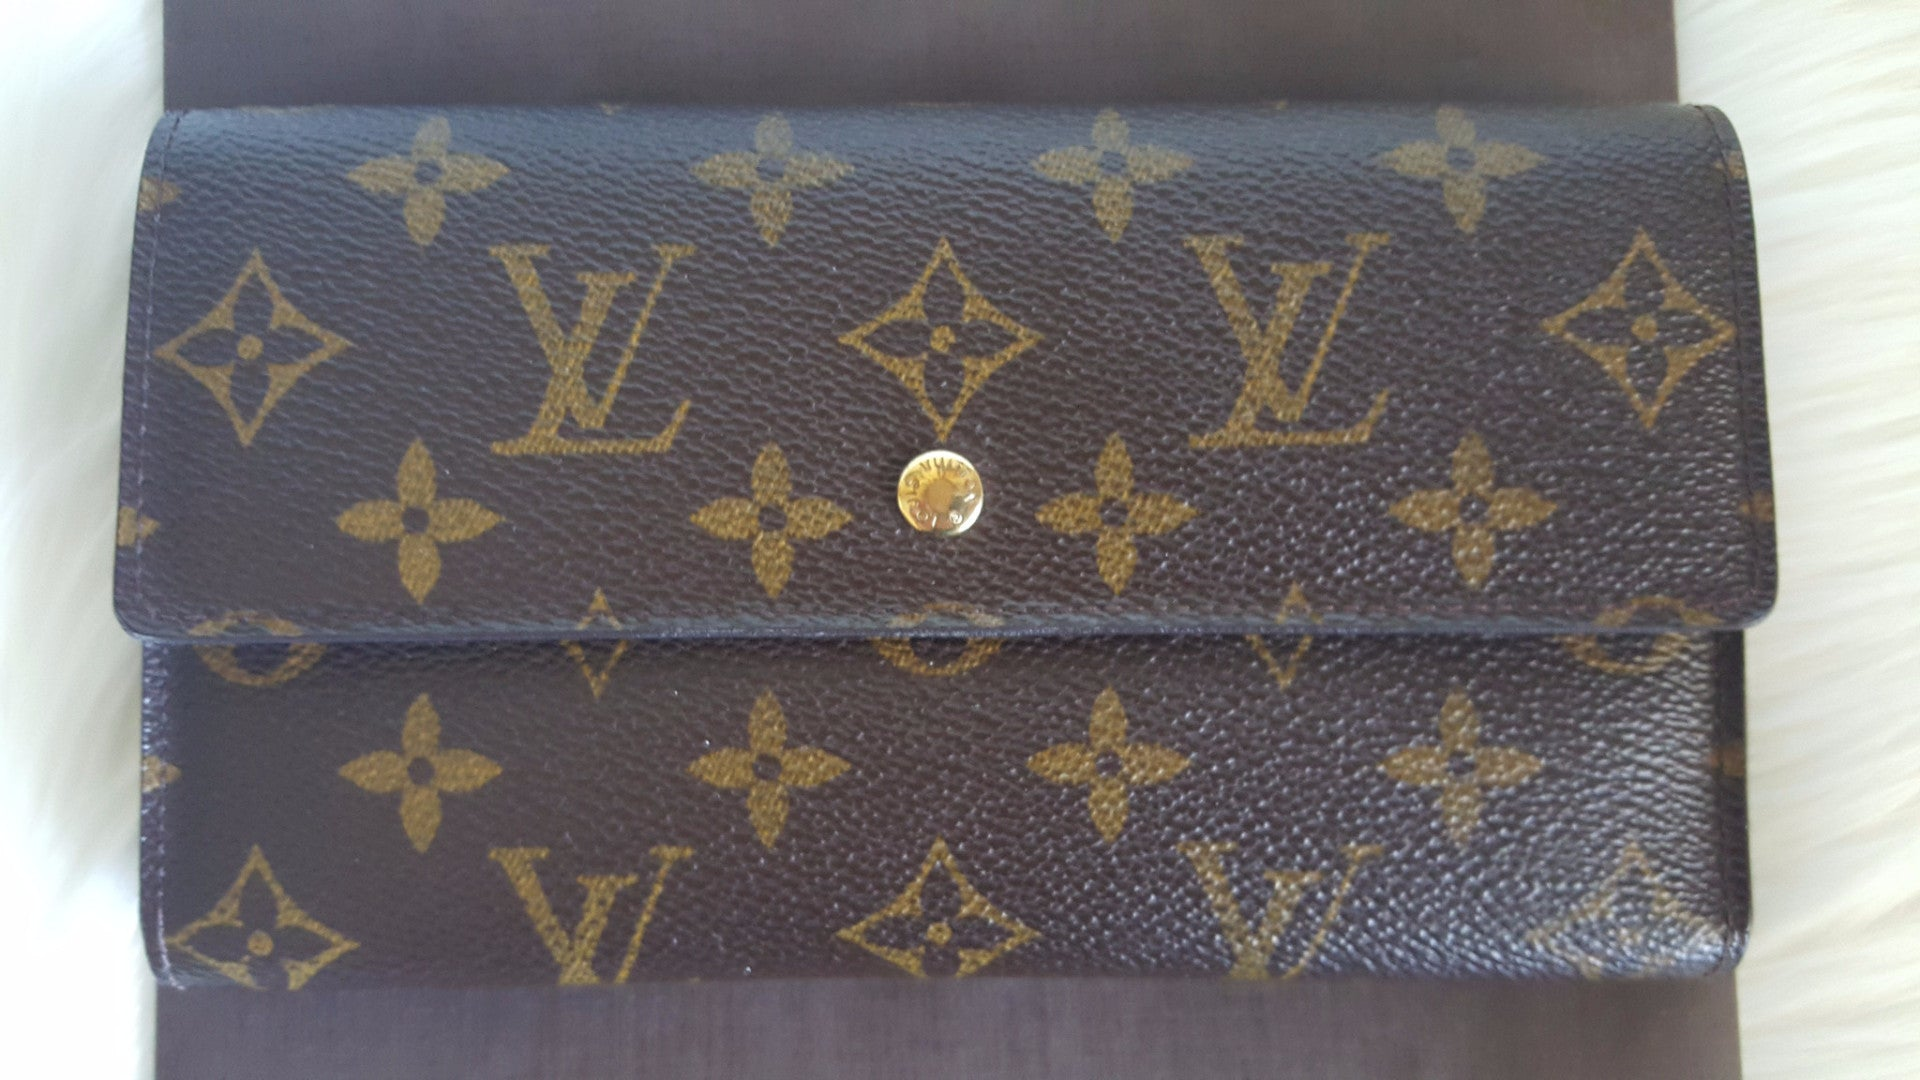 LOUIS VUITTON PORTE TRESOR INTERNATIONAL WALLET - MONOGRAM